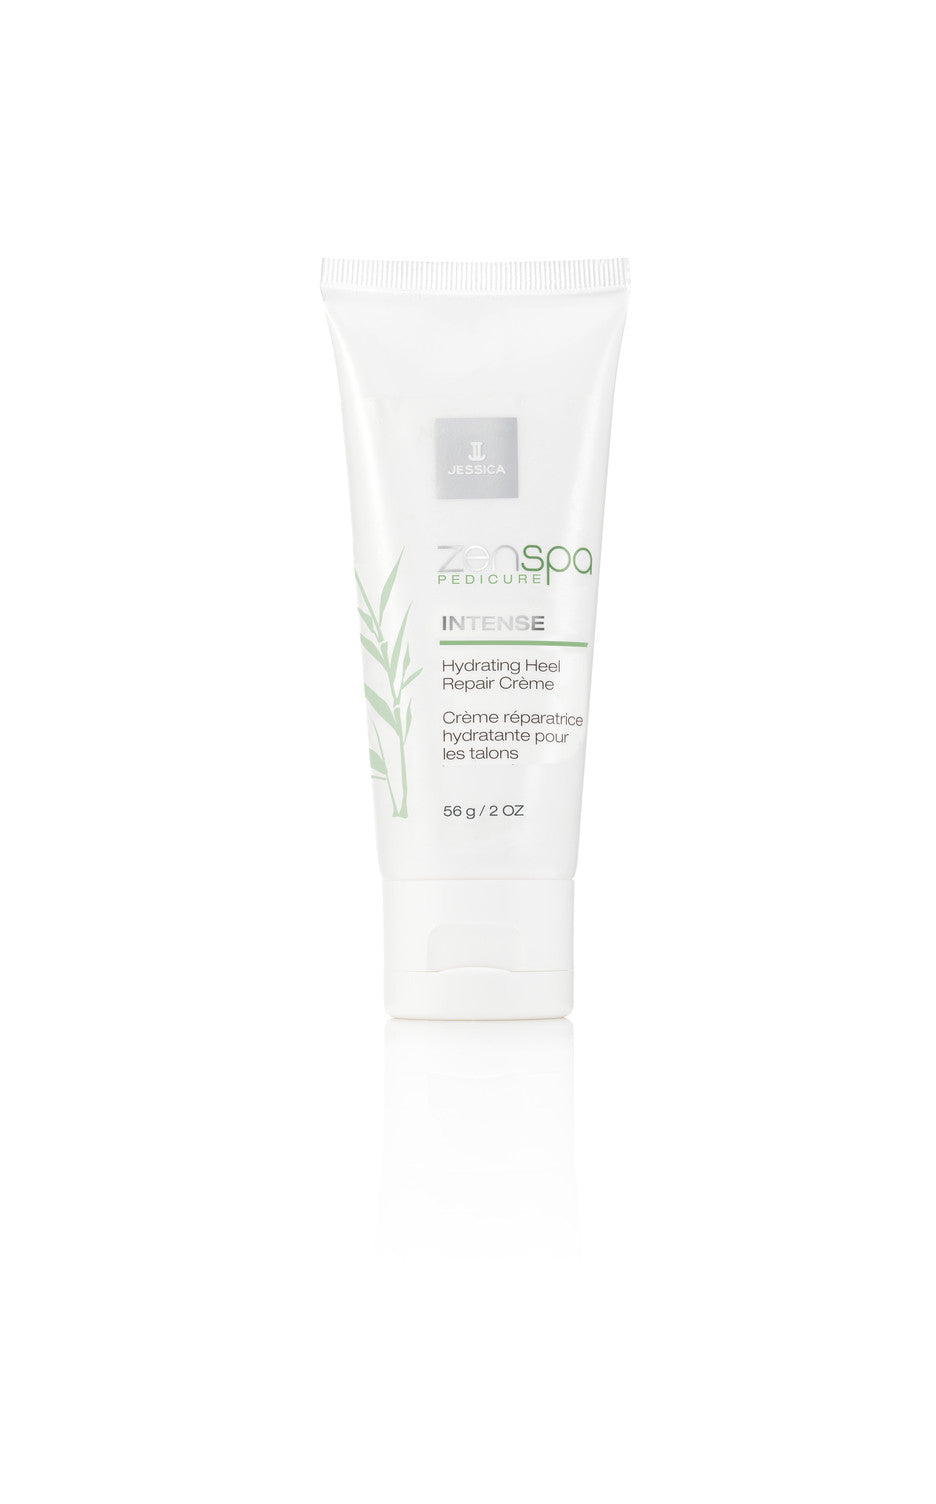 INTENSE <br>Hydrating Heel Repair Crème